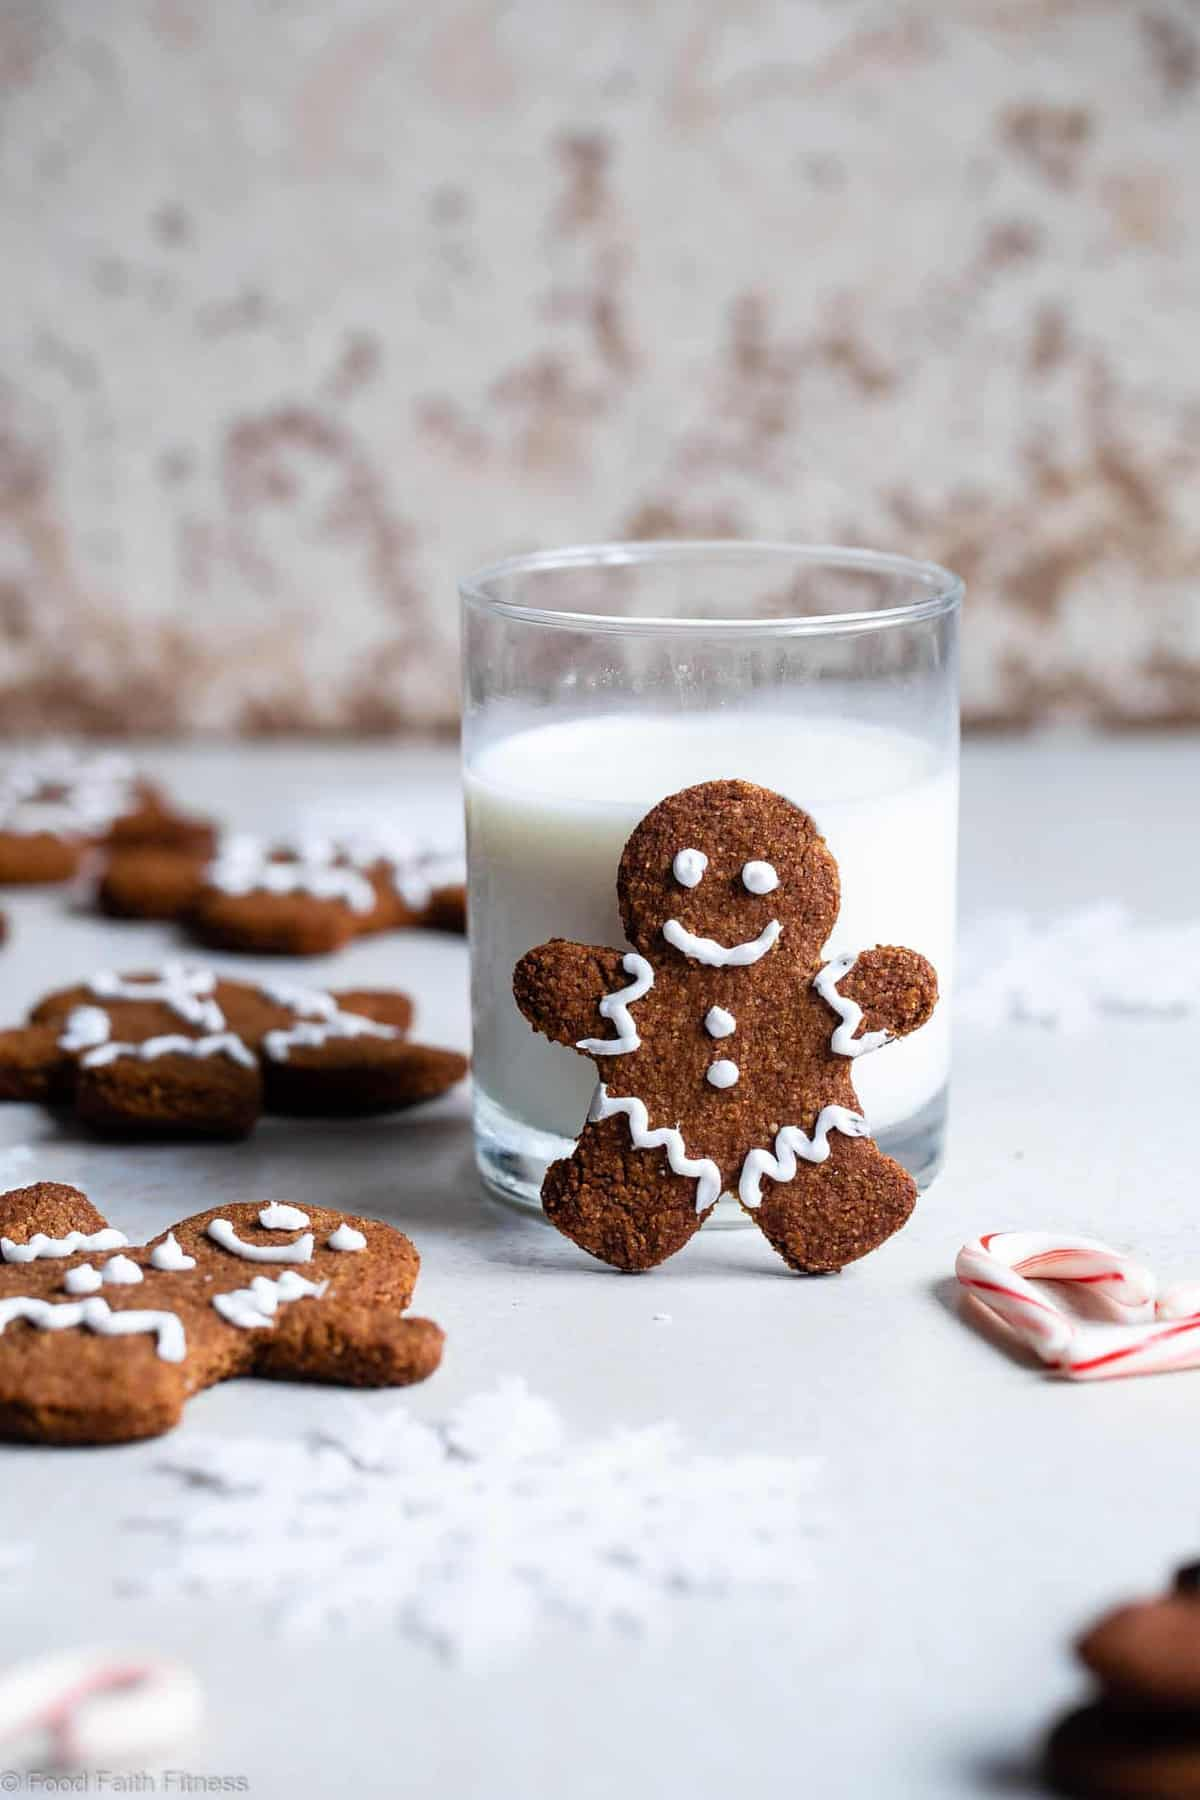 Gluten Free Paleo Gingerbread Cookies - These gingerbread cookies are perfectly spicy, sweet and crispy! An easy, delicious holiday cookie that no one will know are healthy and gluten/grain/dairy/refined sugar free! | #Foodfaithfitness | #Glutenfree #paleo #Gingerbread #healthy #dairyfree